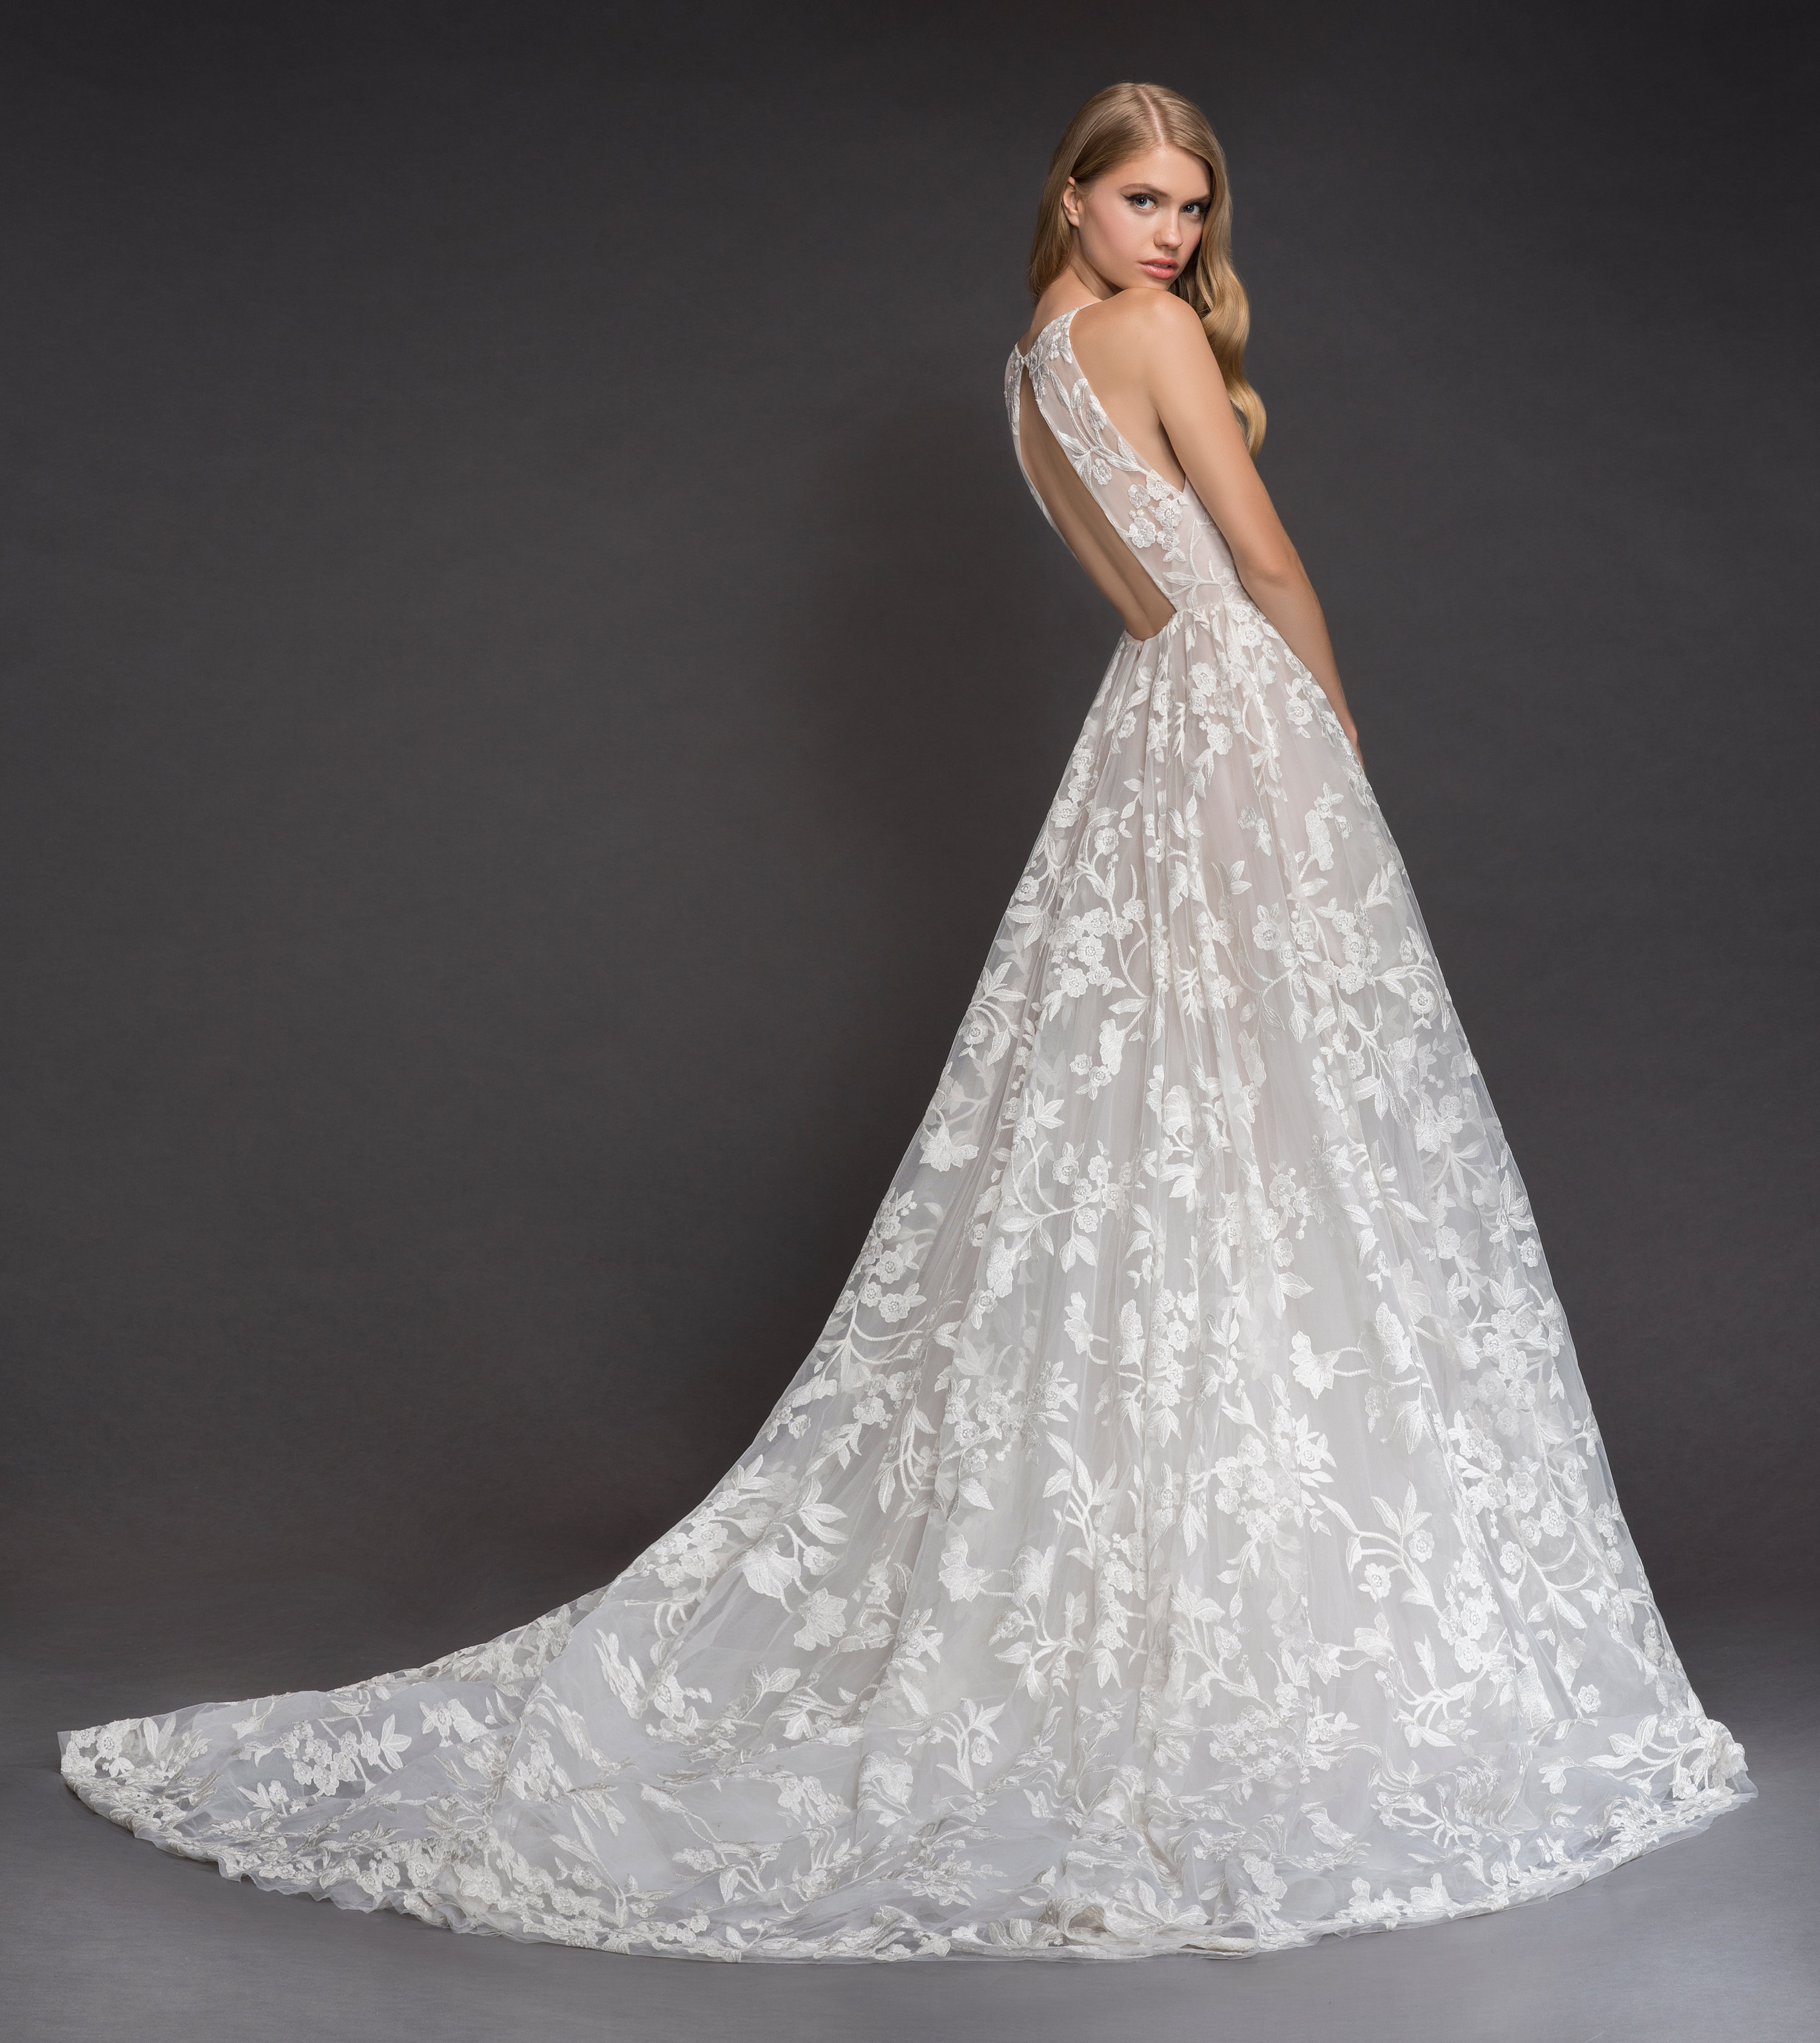 Bridal gowns and wedding dresses by jlm couture style 1817 fleur blush by hayley paige style 1817 fleur de lis bridal gown junglespirit Image collections